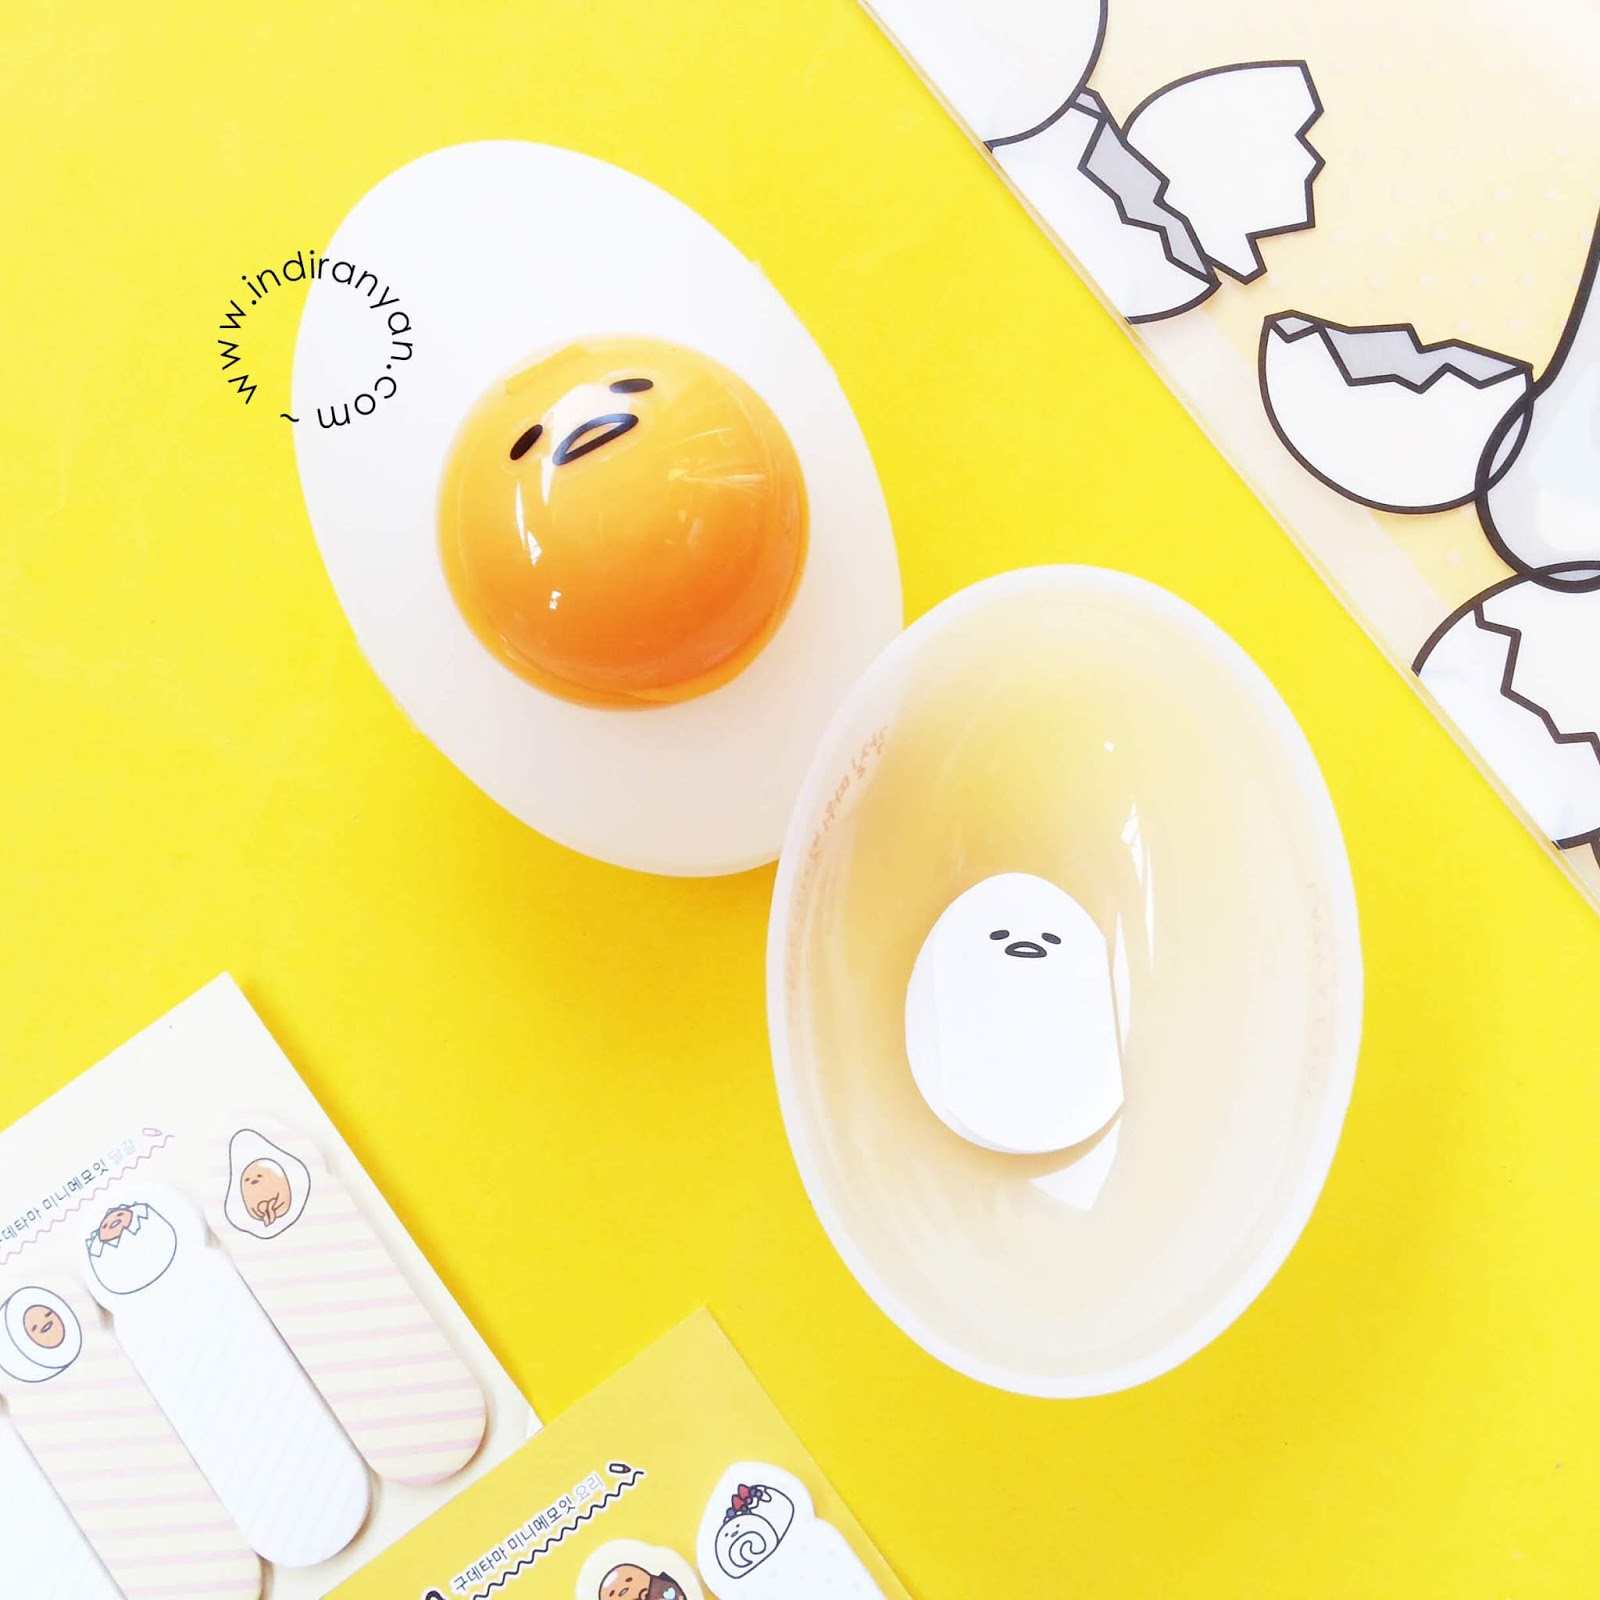 holika-holika-lazy-easy-smooth-egg-skin-peeling-gel-gudetama-edition. holika-holika-peeling-gel, holika-holika-smooth-egg-skin-peeling-gel